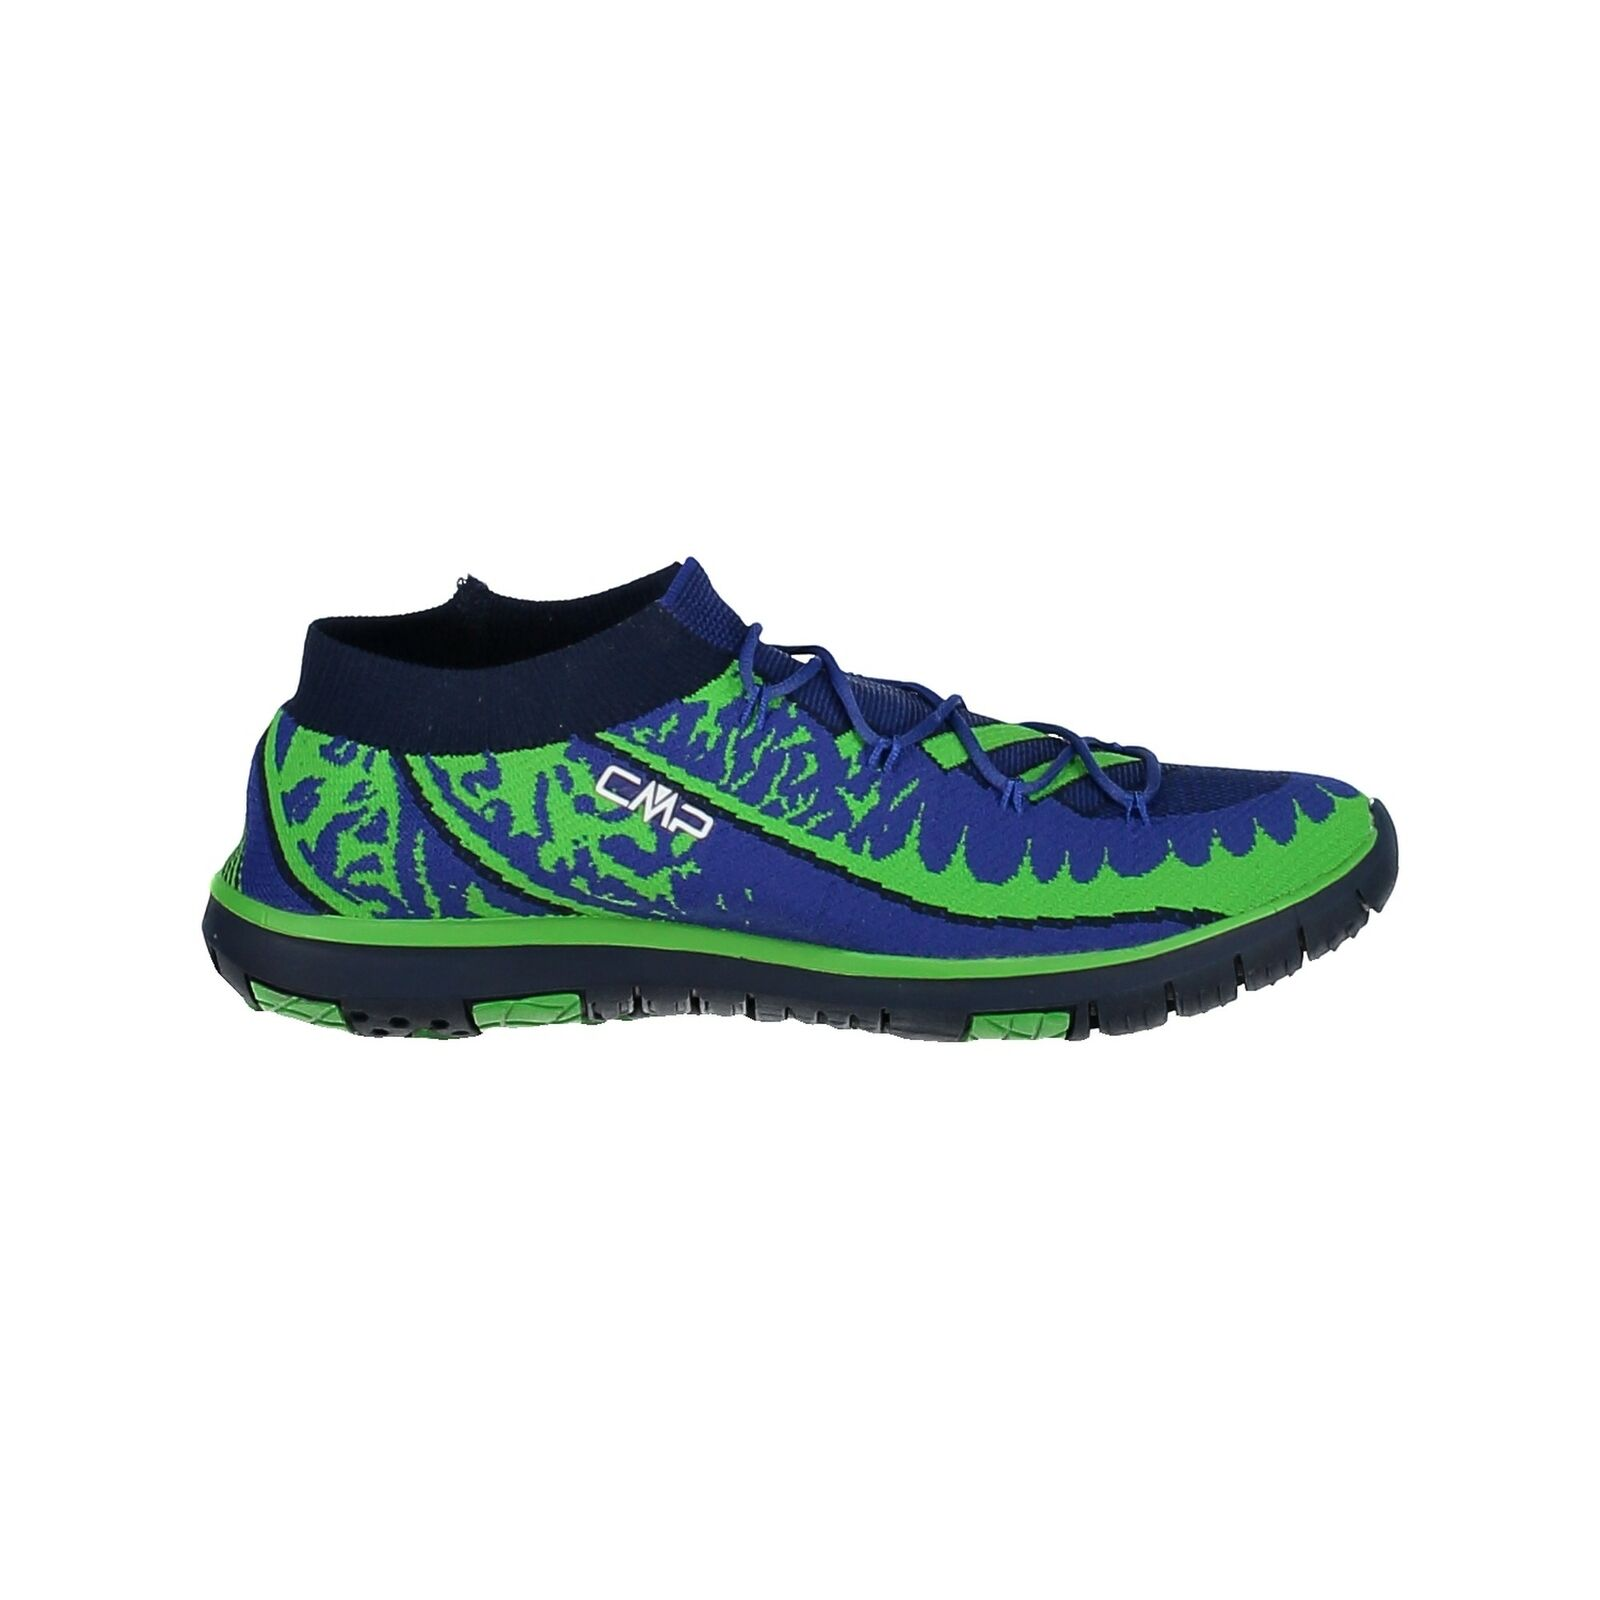 CMP  sneakers gimanasia Chamaeleontis agile Fitness Breathable blue  factory outlet online discount sale